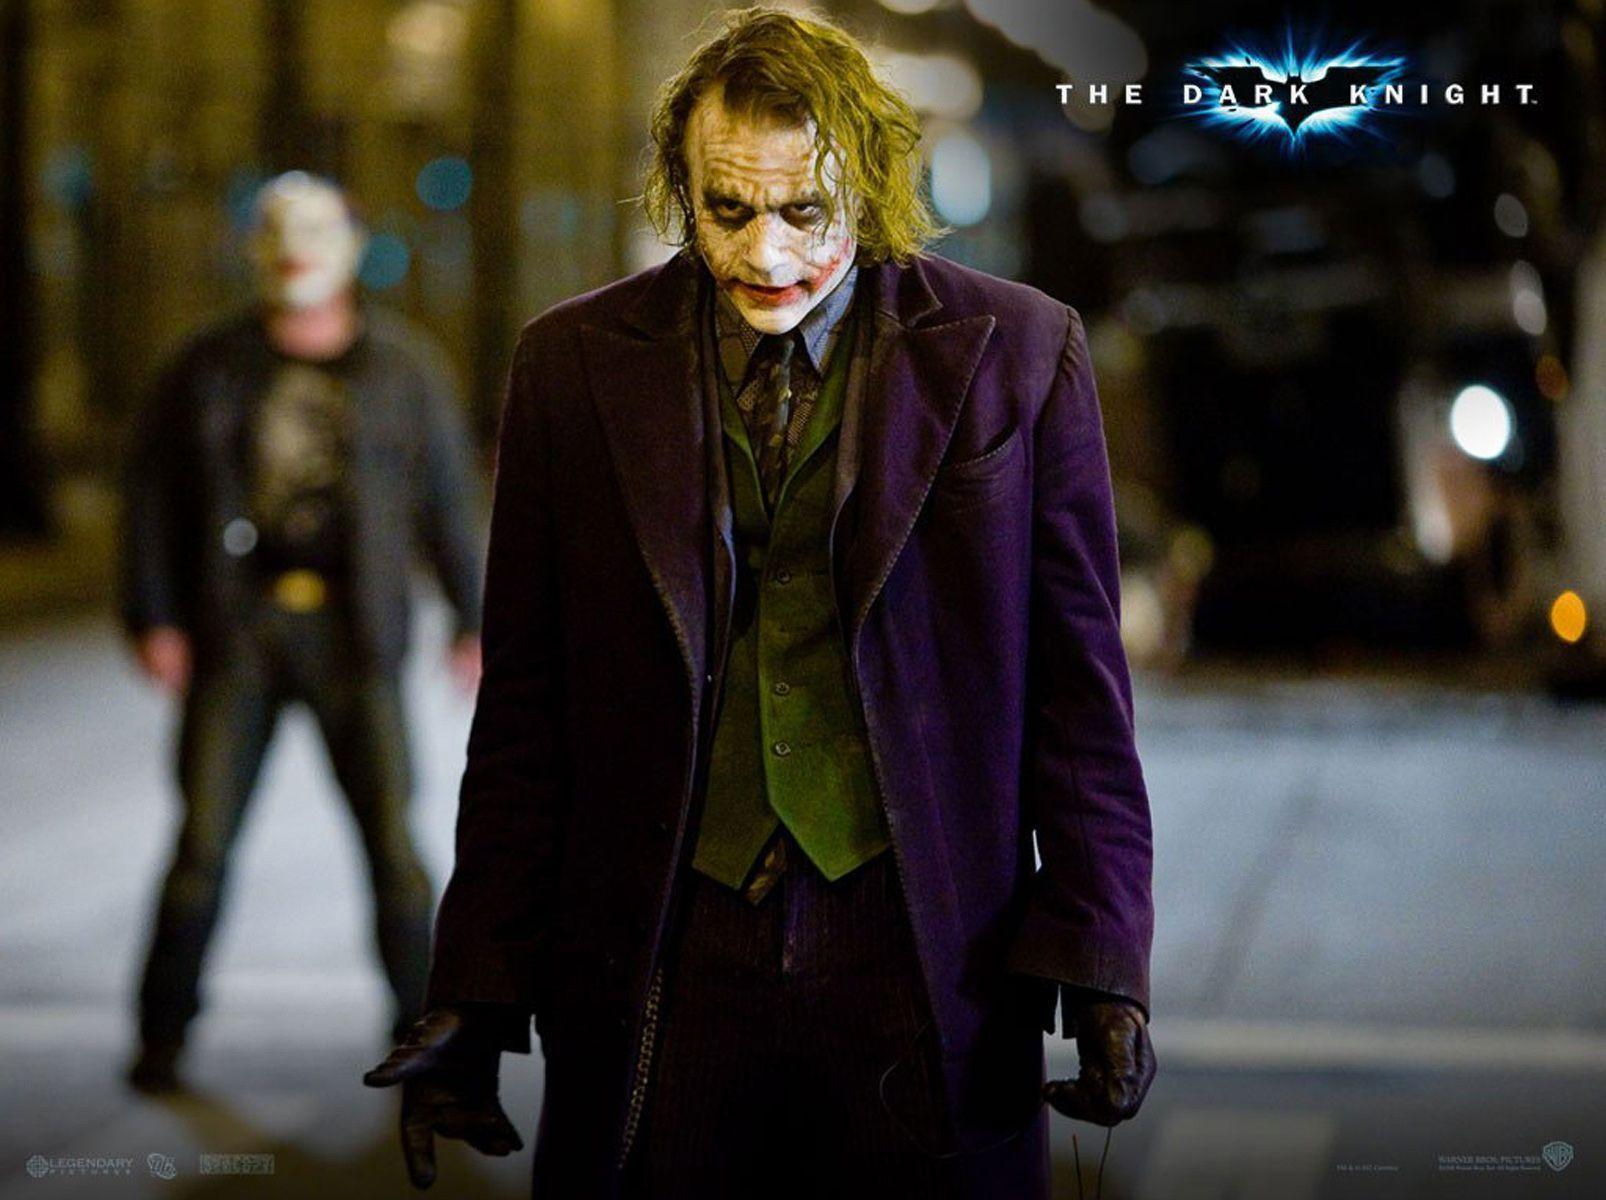 Joker in the Dark Knight HQ Wallpapers Download